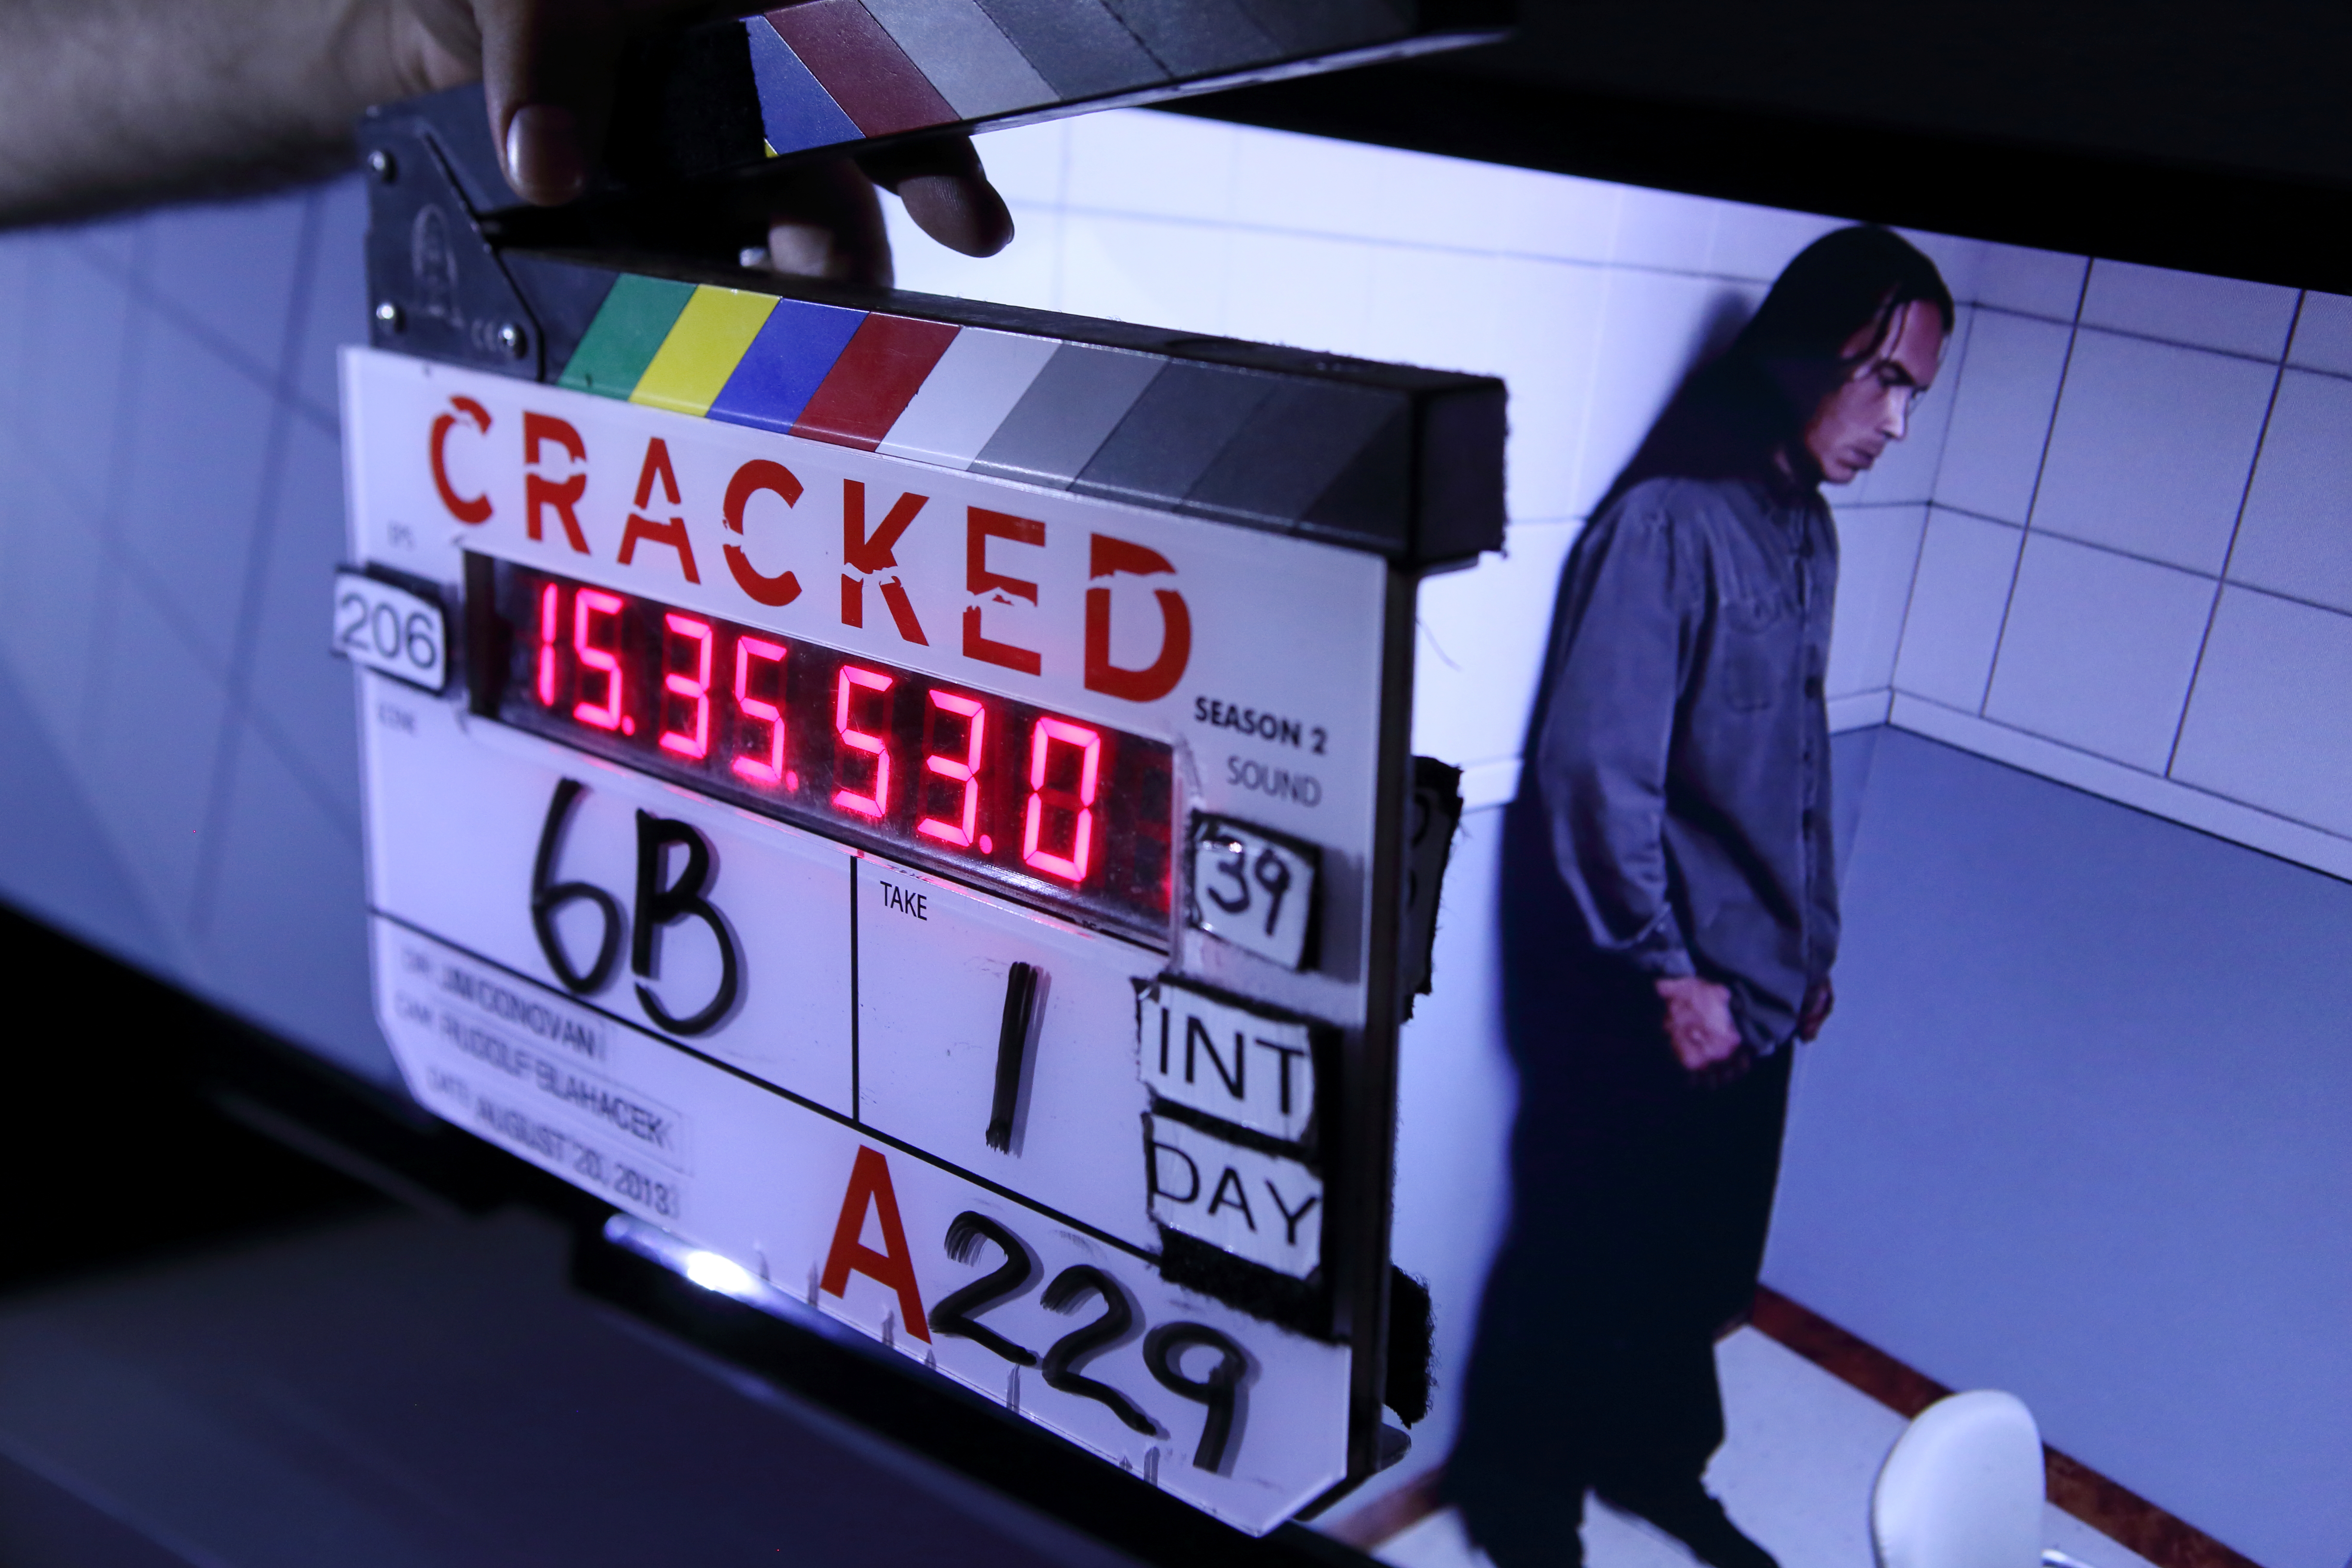 Cracked 206 - Episode 206 Ghost Dance  2013